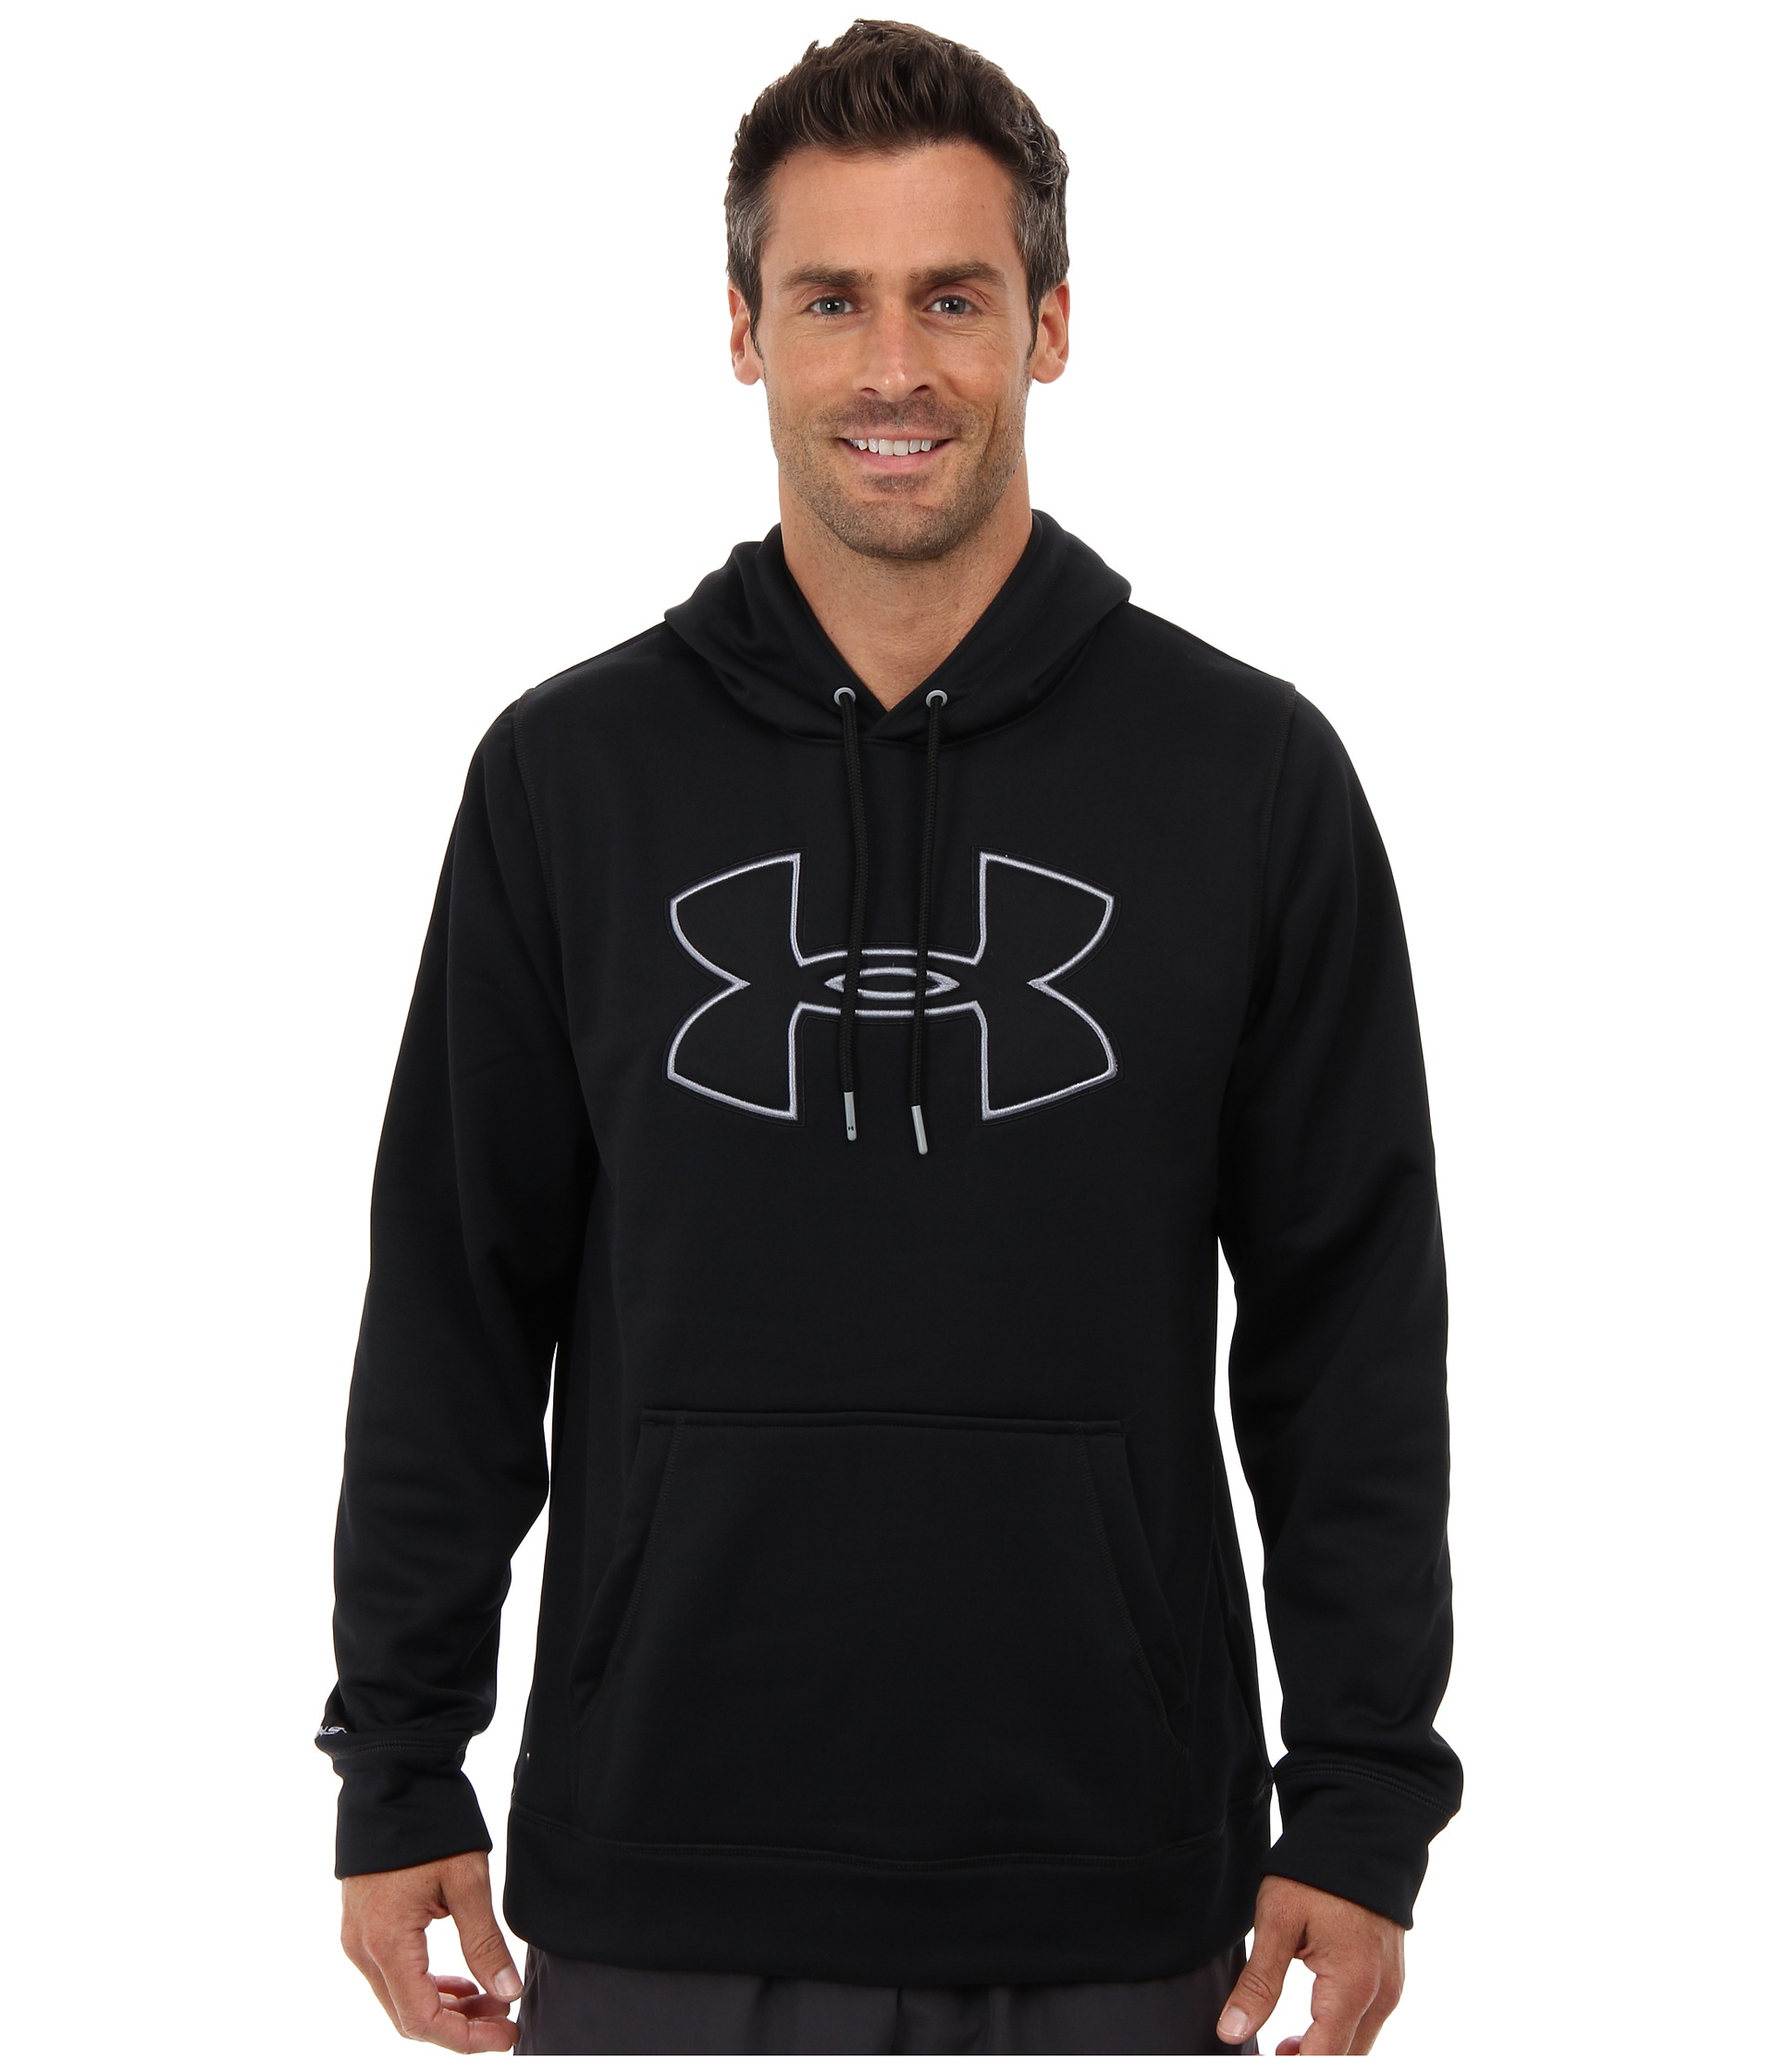 Under Armour, Hoodies & Sweatshirts, Men at 6pm.com